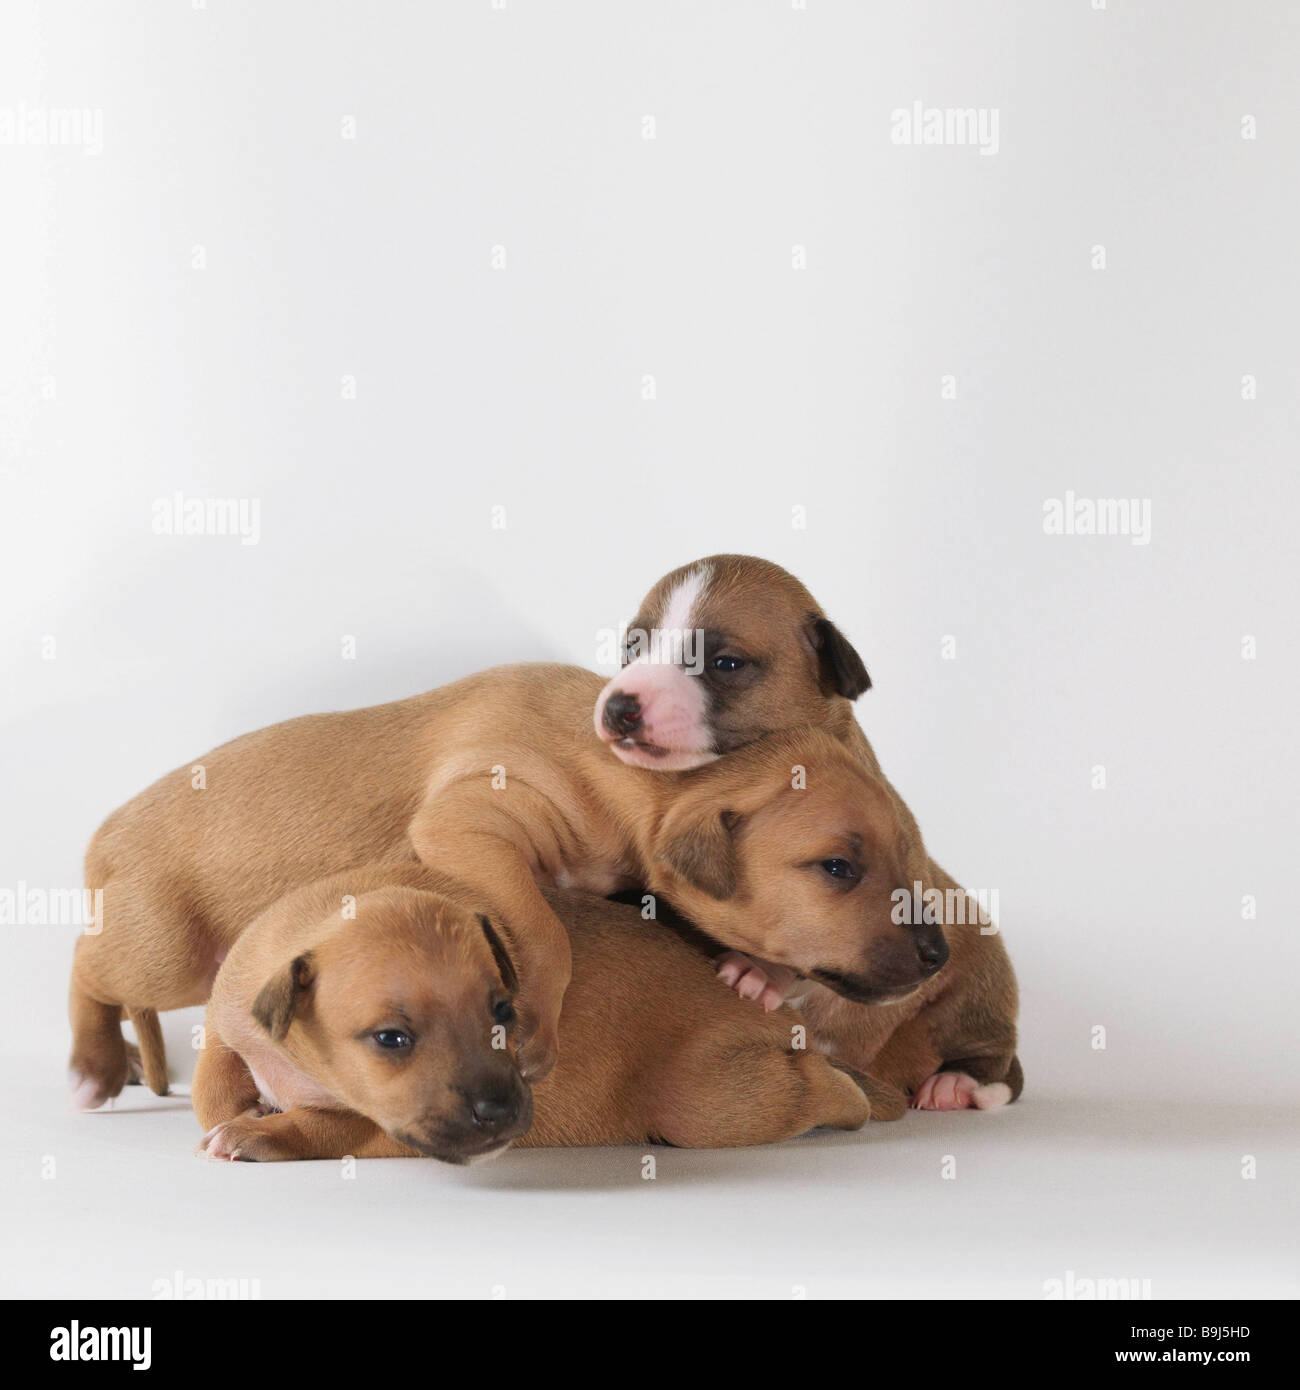 3 1-week-old puppies playing - Stock Image